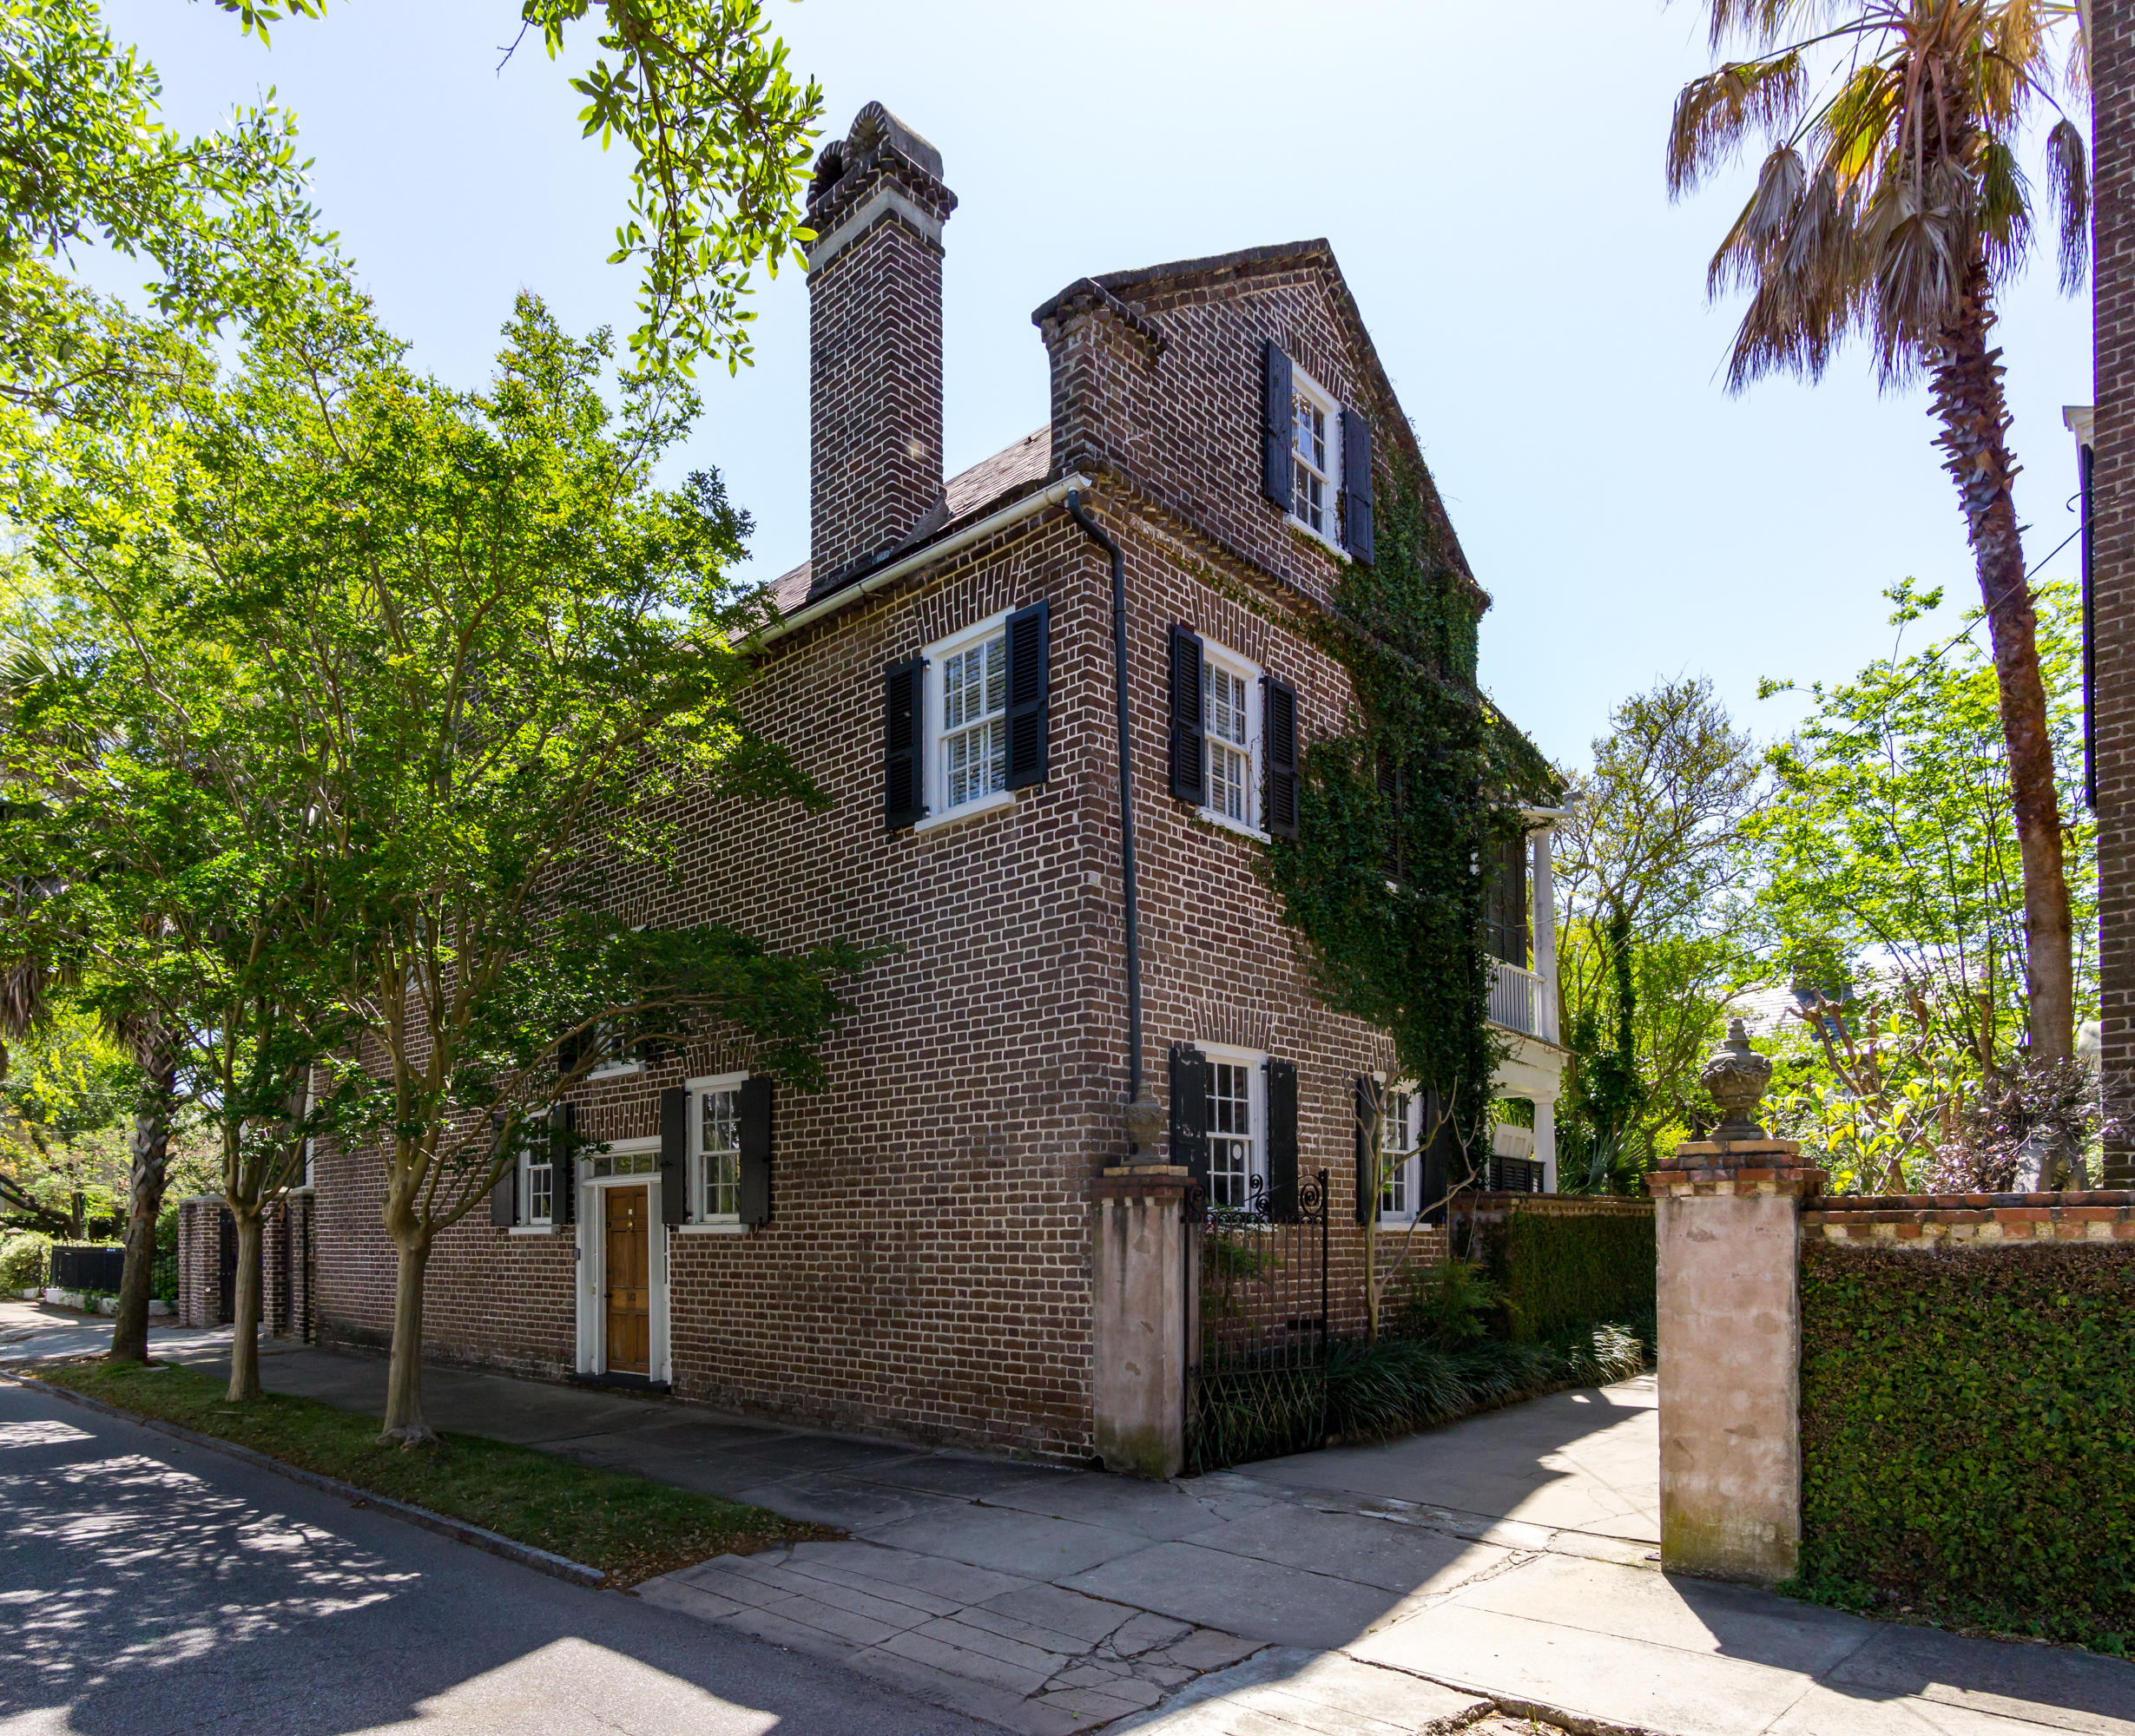 173&171.5 Wentworth Street Charleston, SC 29401